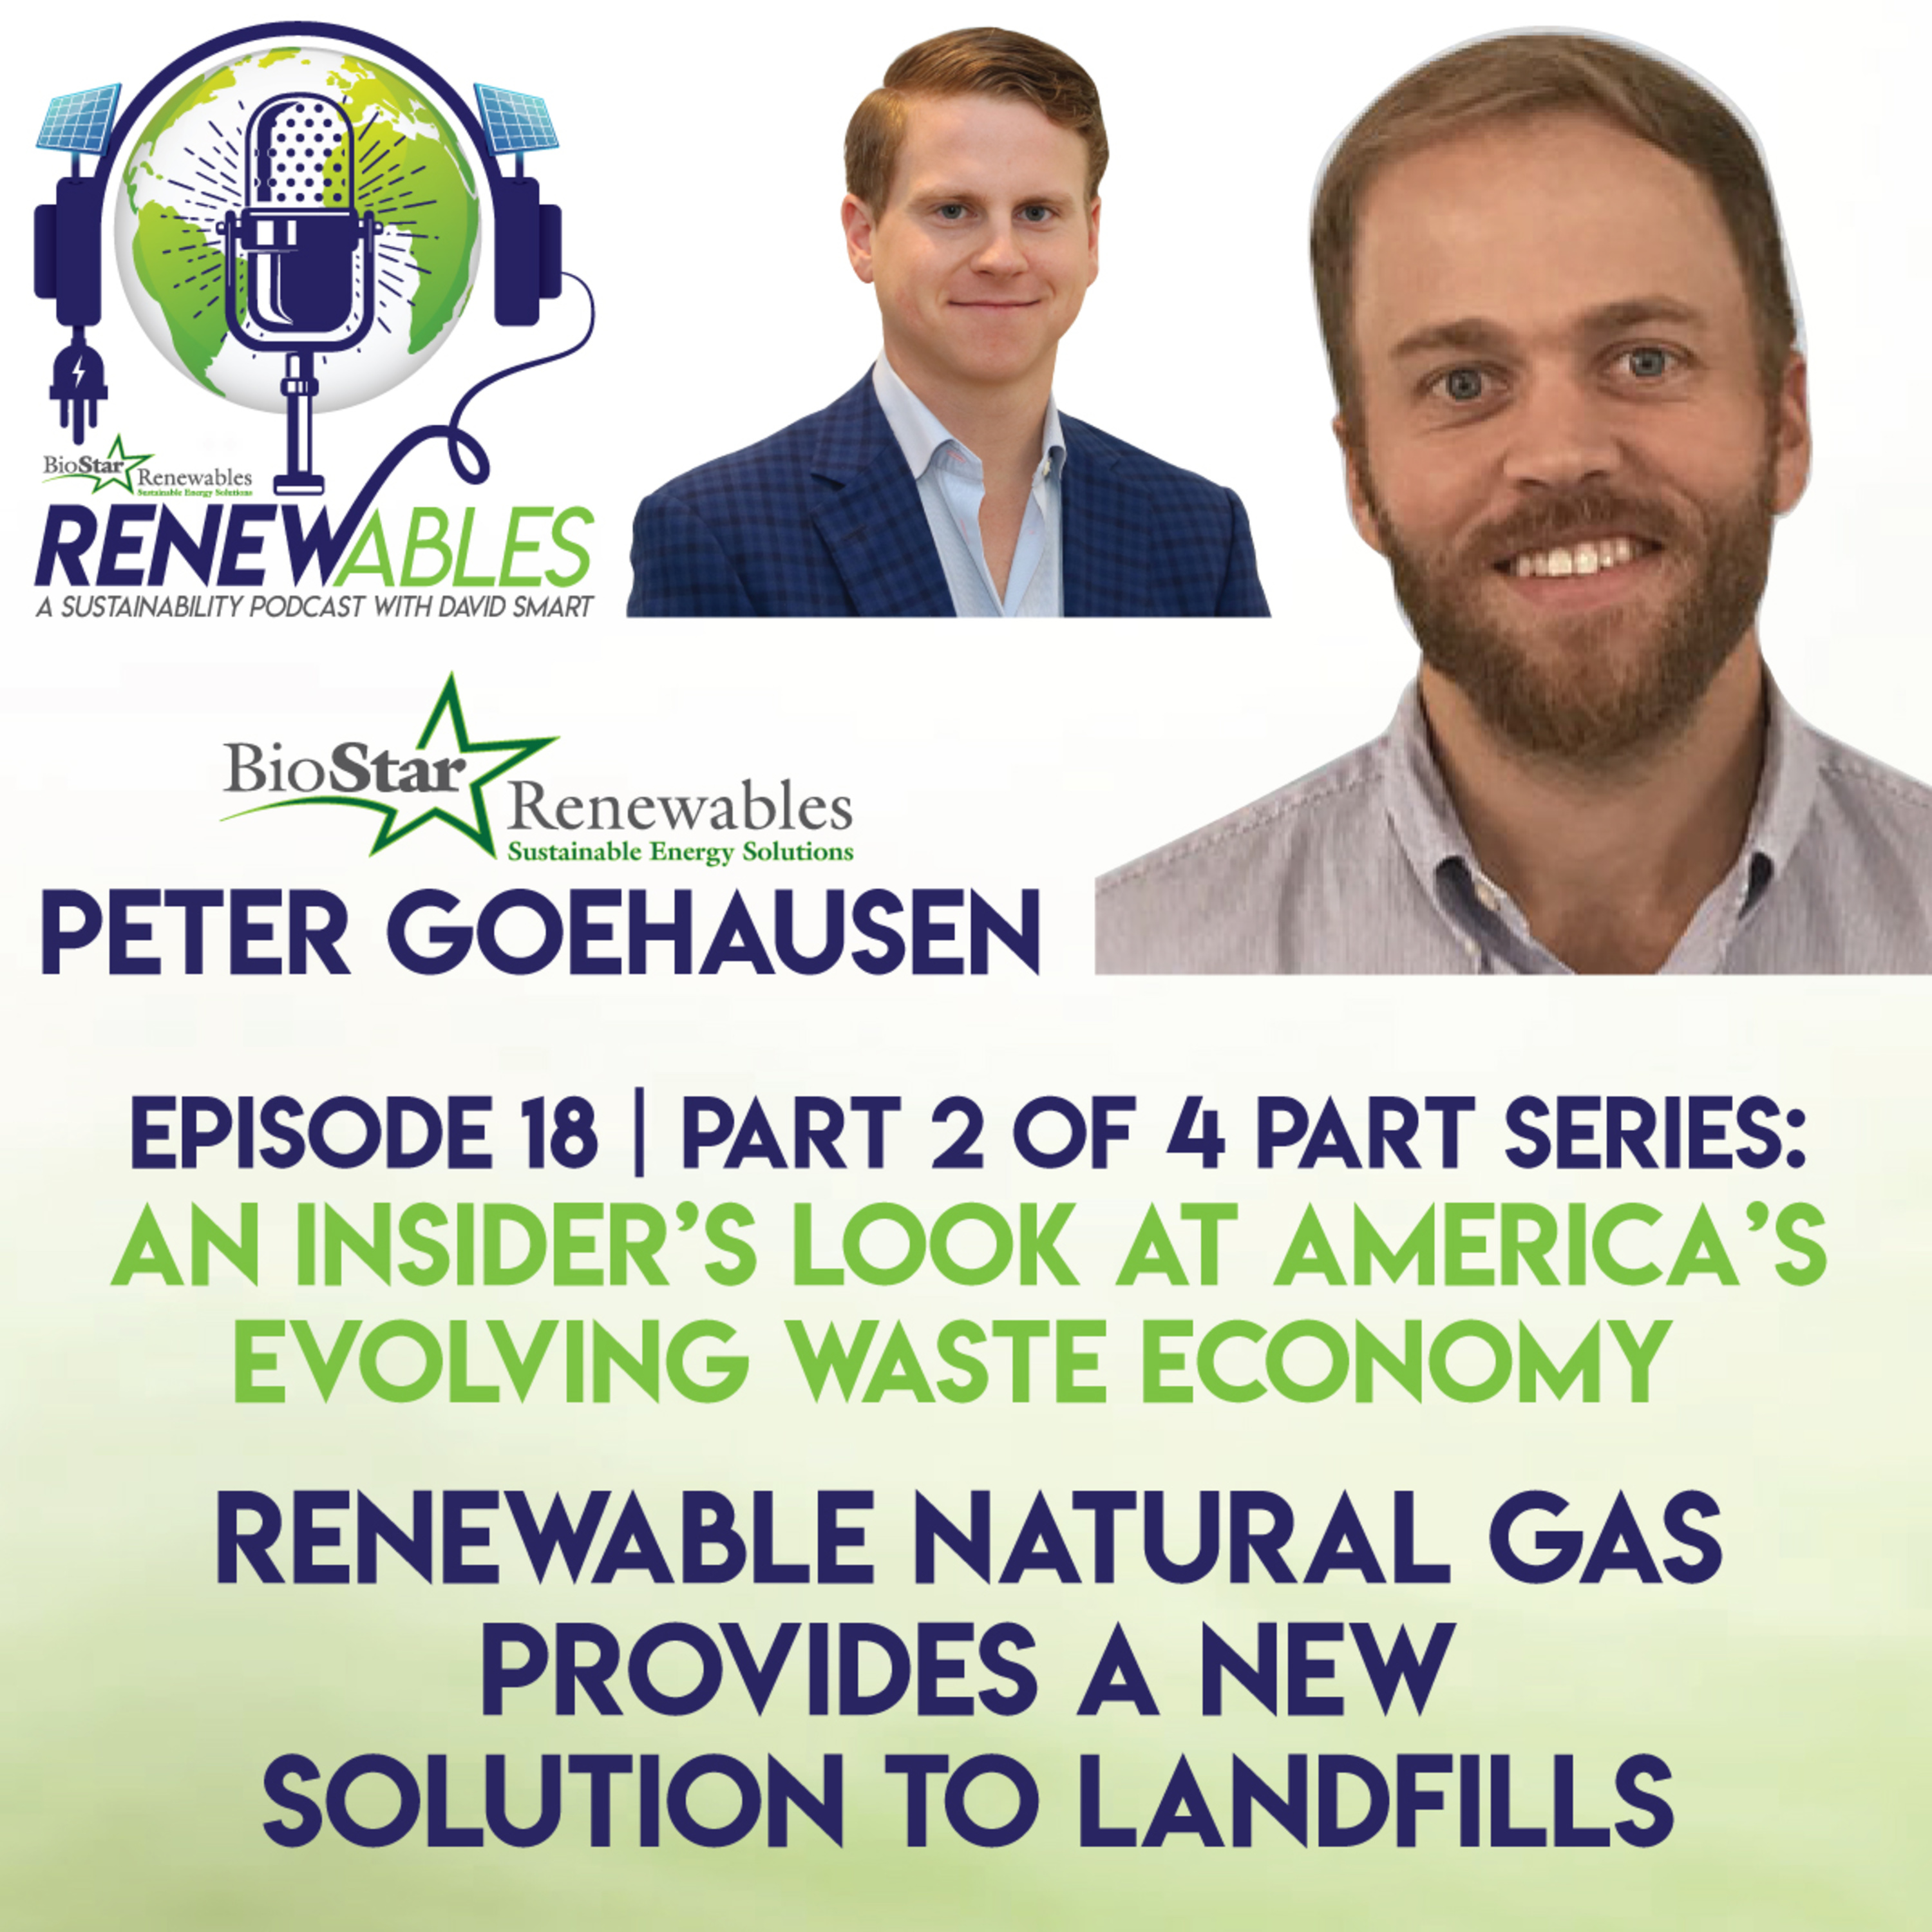 RENEWables Episode 18: An Insider's Look at America's Evolving Waste Economy - Renewable Natural Gas Provides a New Solution to Landfills